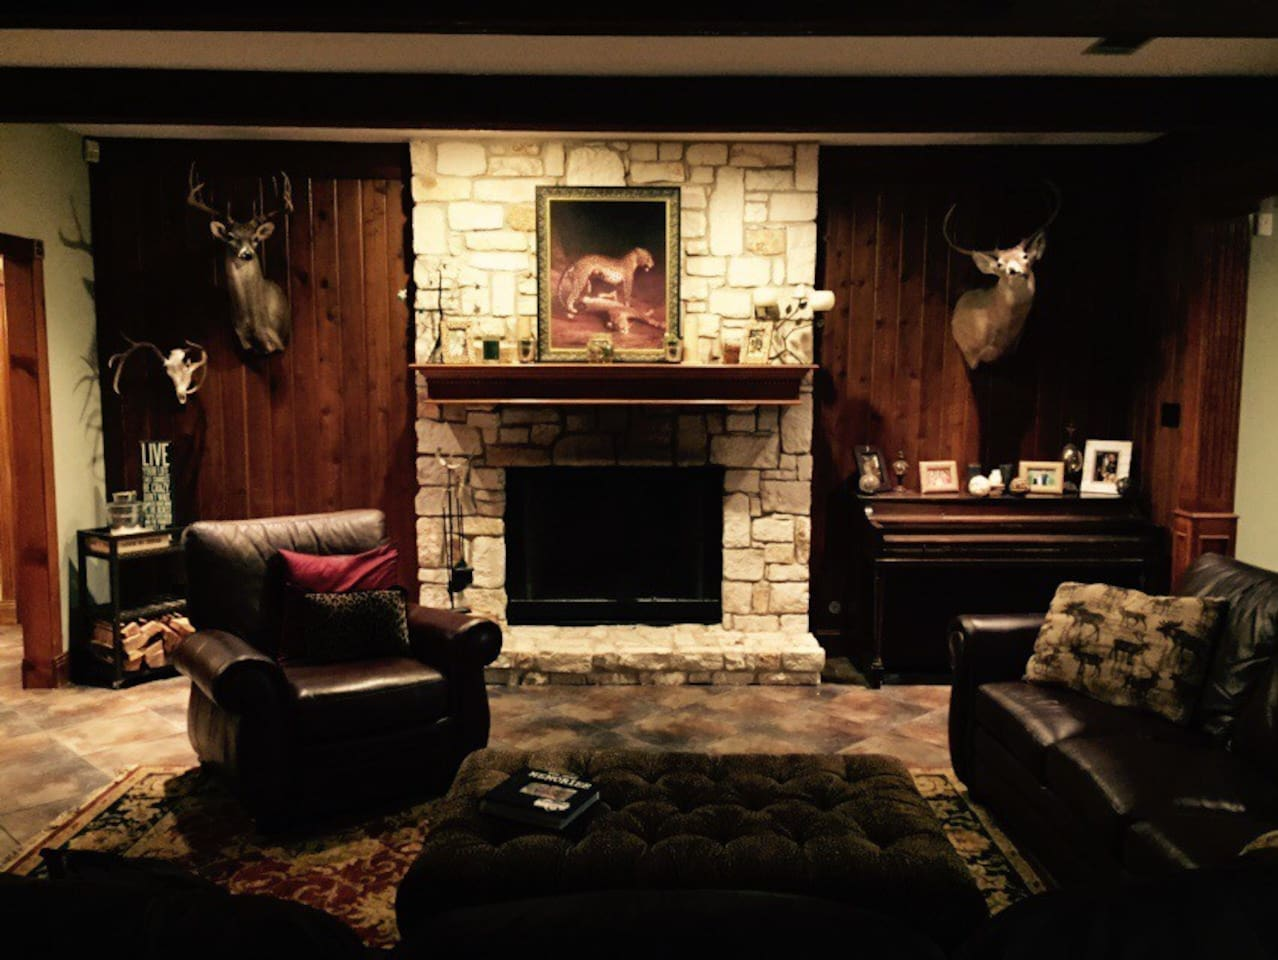 Large, functioning fireplace with wood